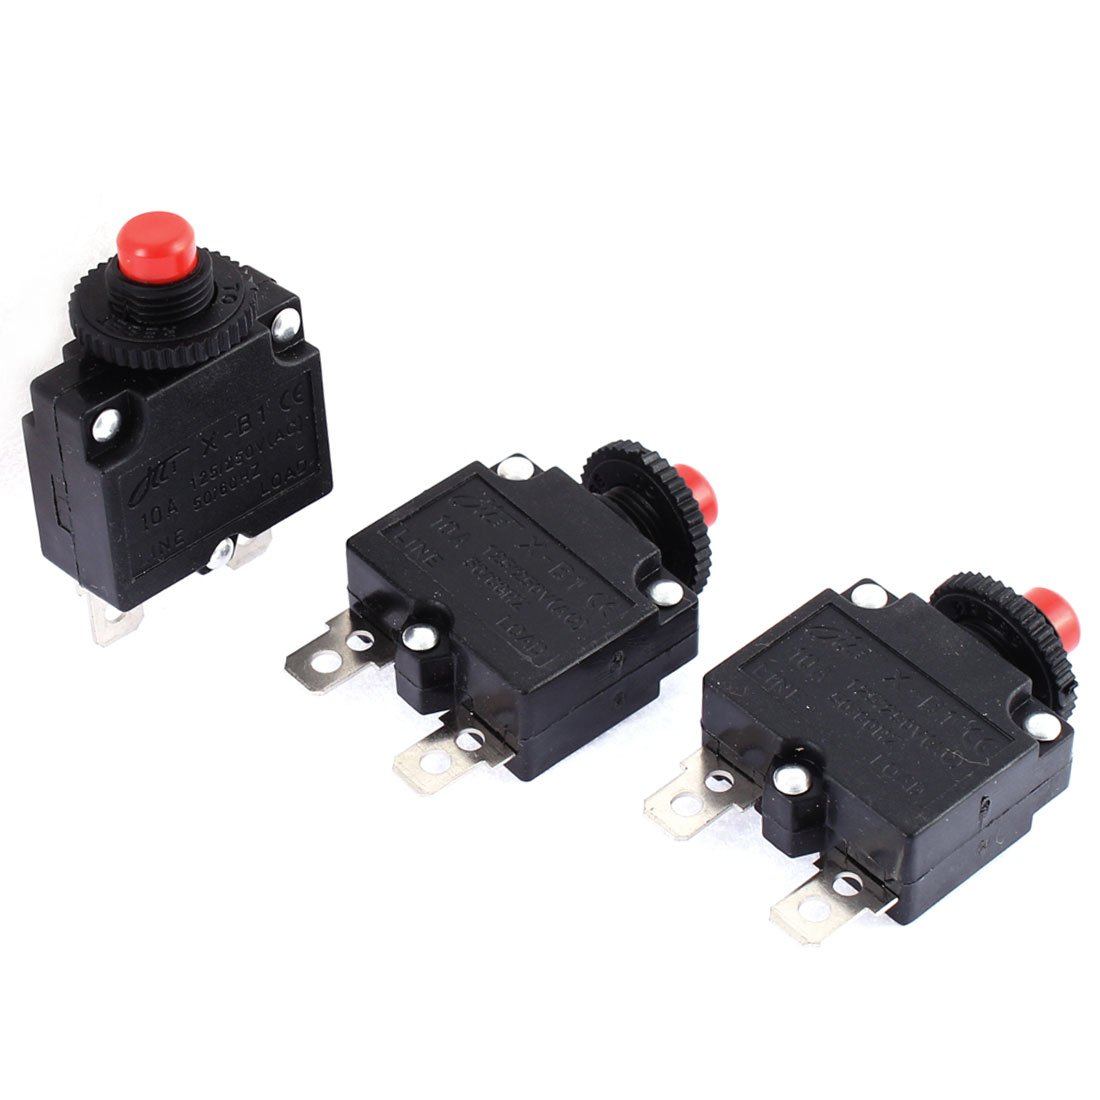 uxcell 5Pcs Thermal Overload Protector AC 125//250V 7A Push Button Reset Circuit Breaker